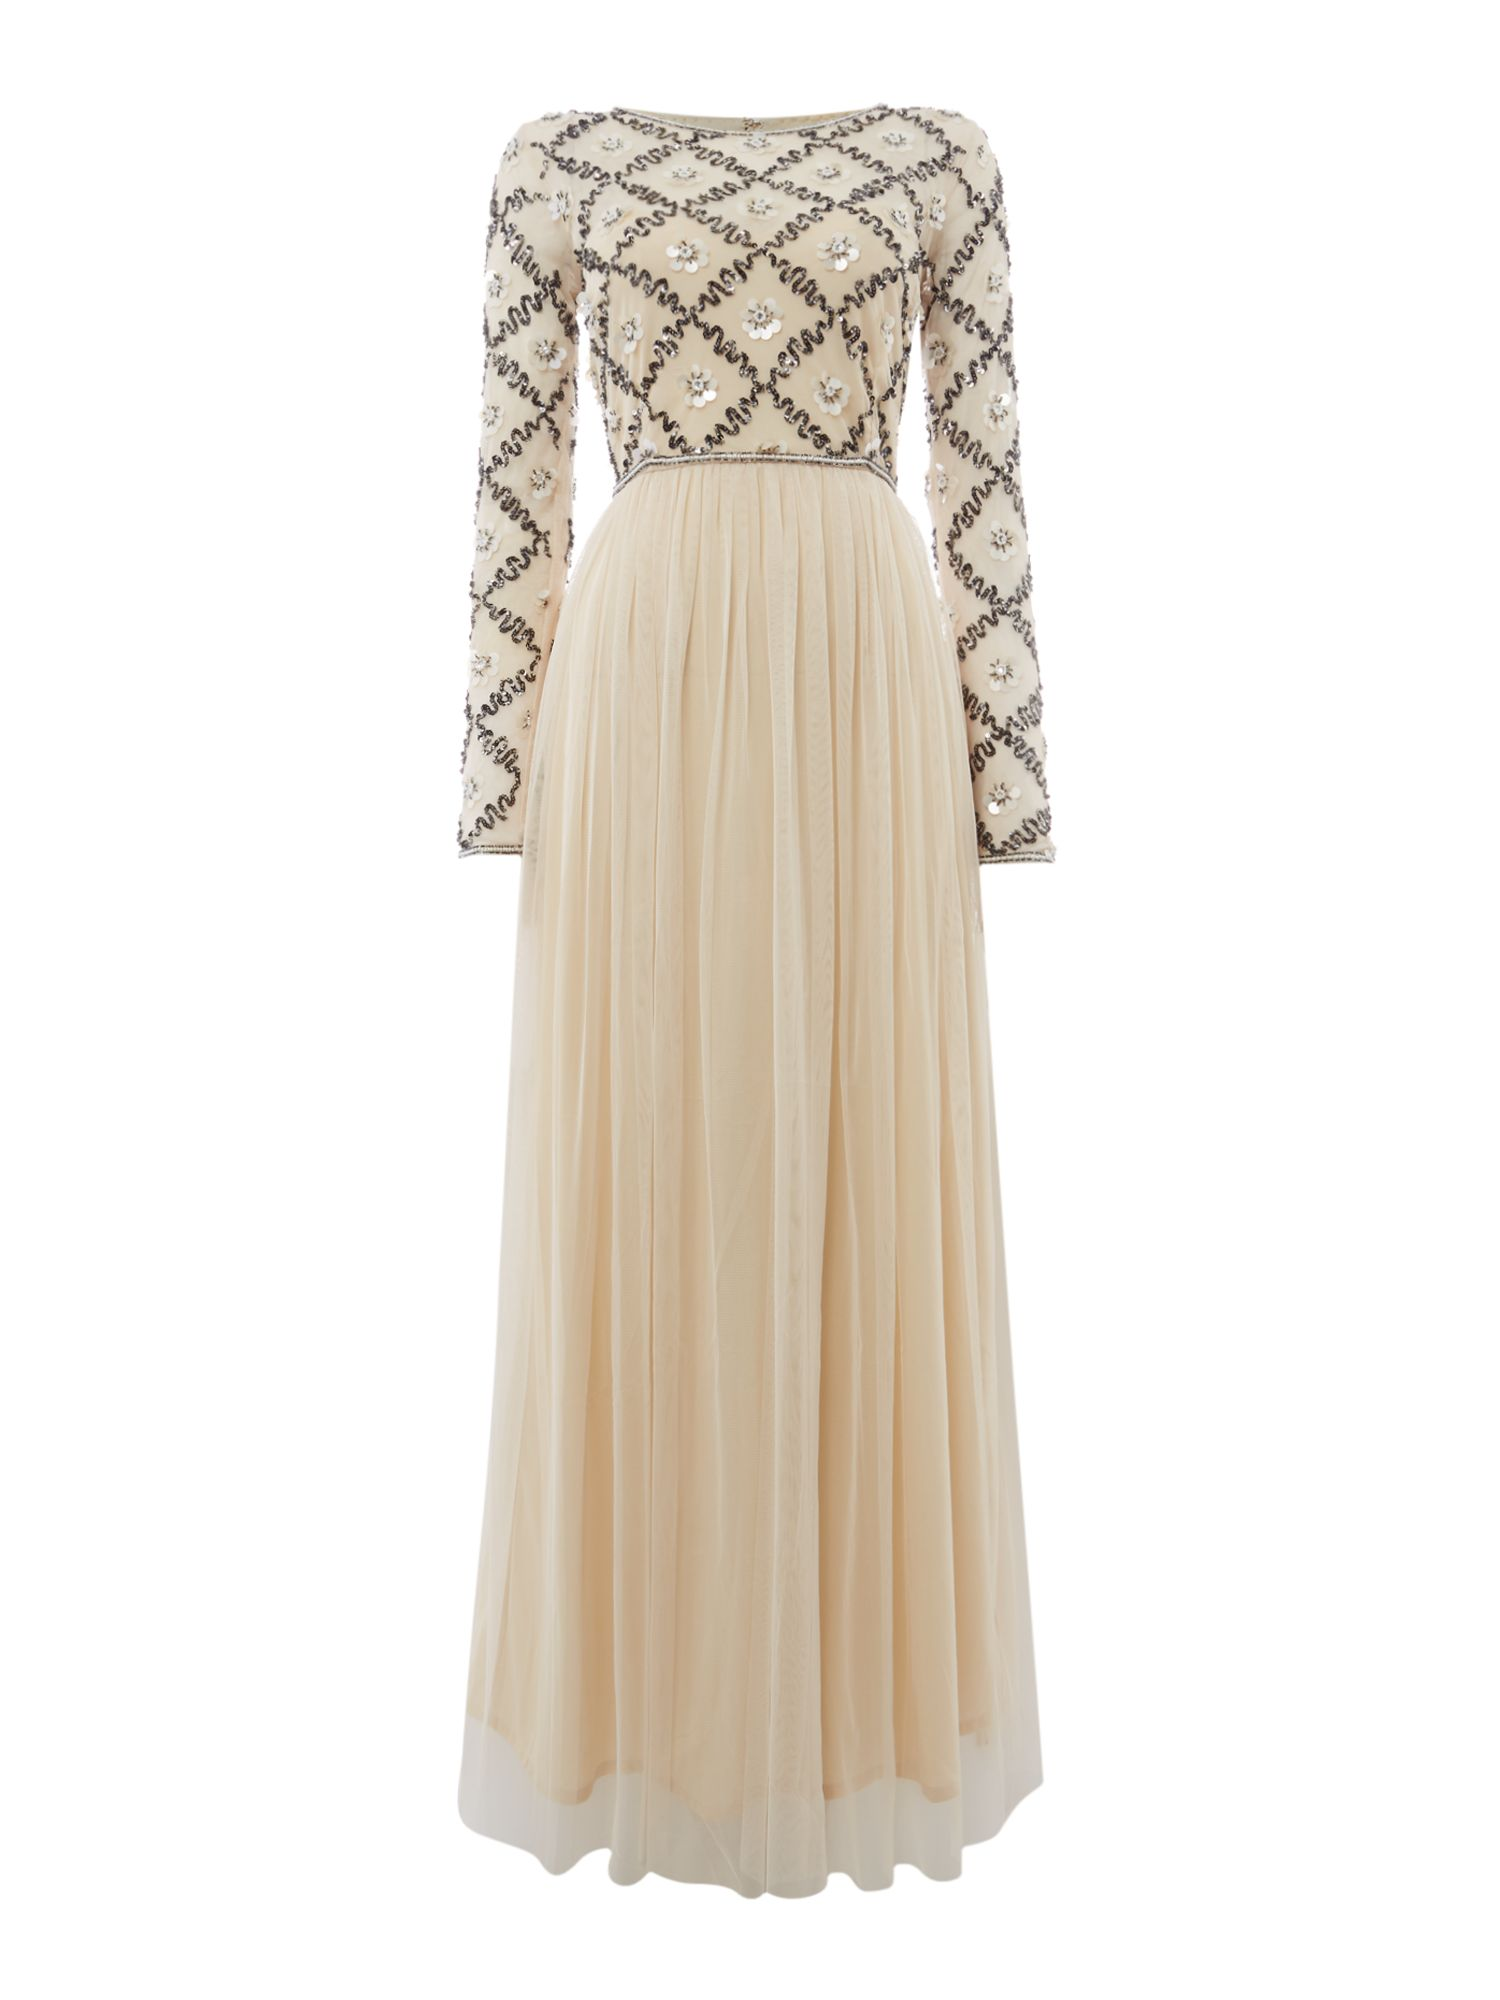 Lace and Beads Embellished maxi dress, Cream